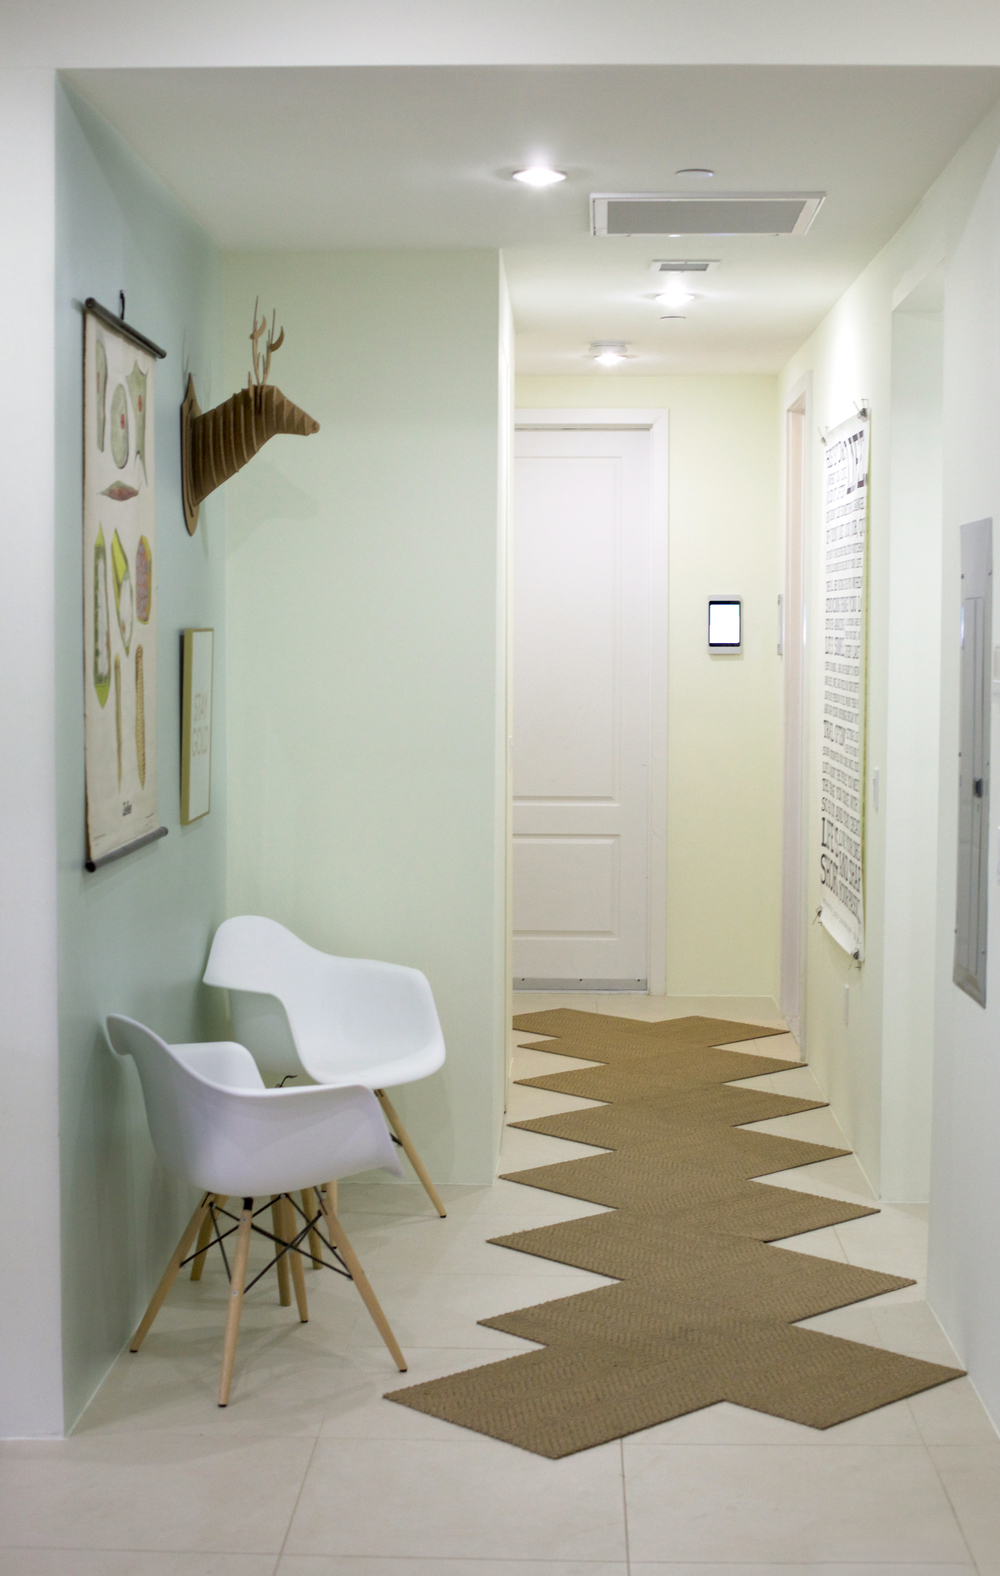 zmaic-one-month-interior-design-hallway-flor-seating-nook.jpg